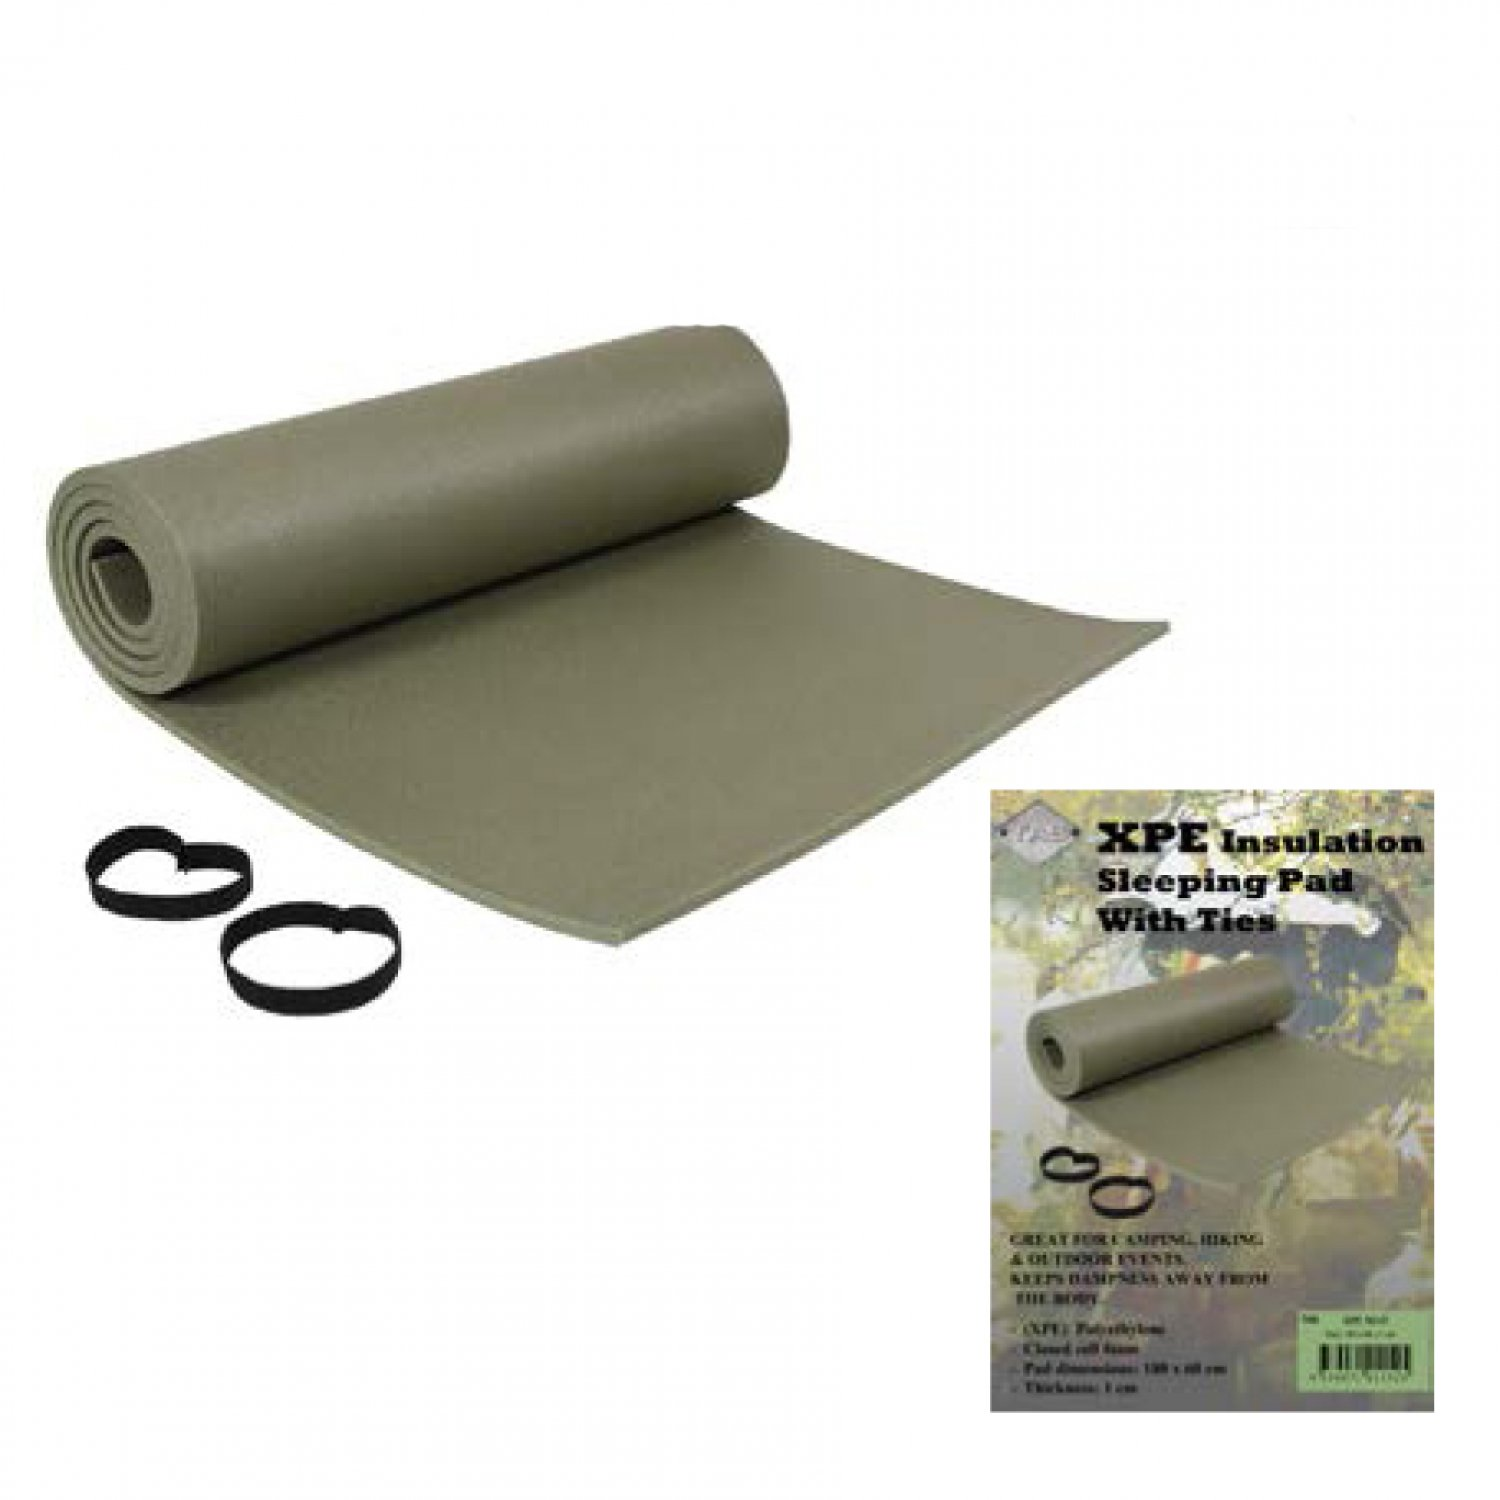 for mats bed carer long mat cordless products remote or floormat is gray floor sleeping alarm doorway monitor with fmt